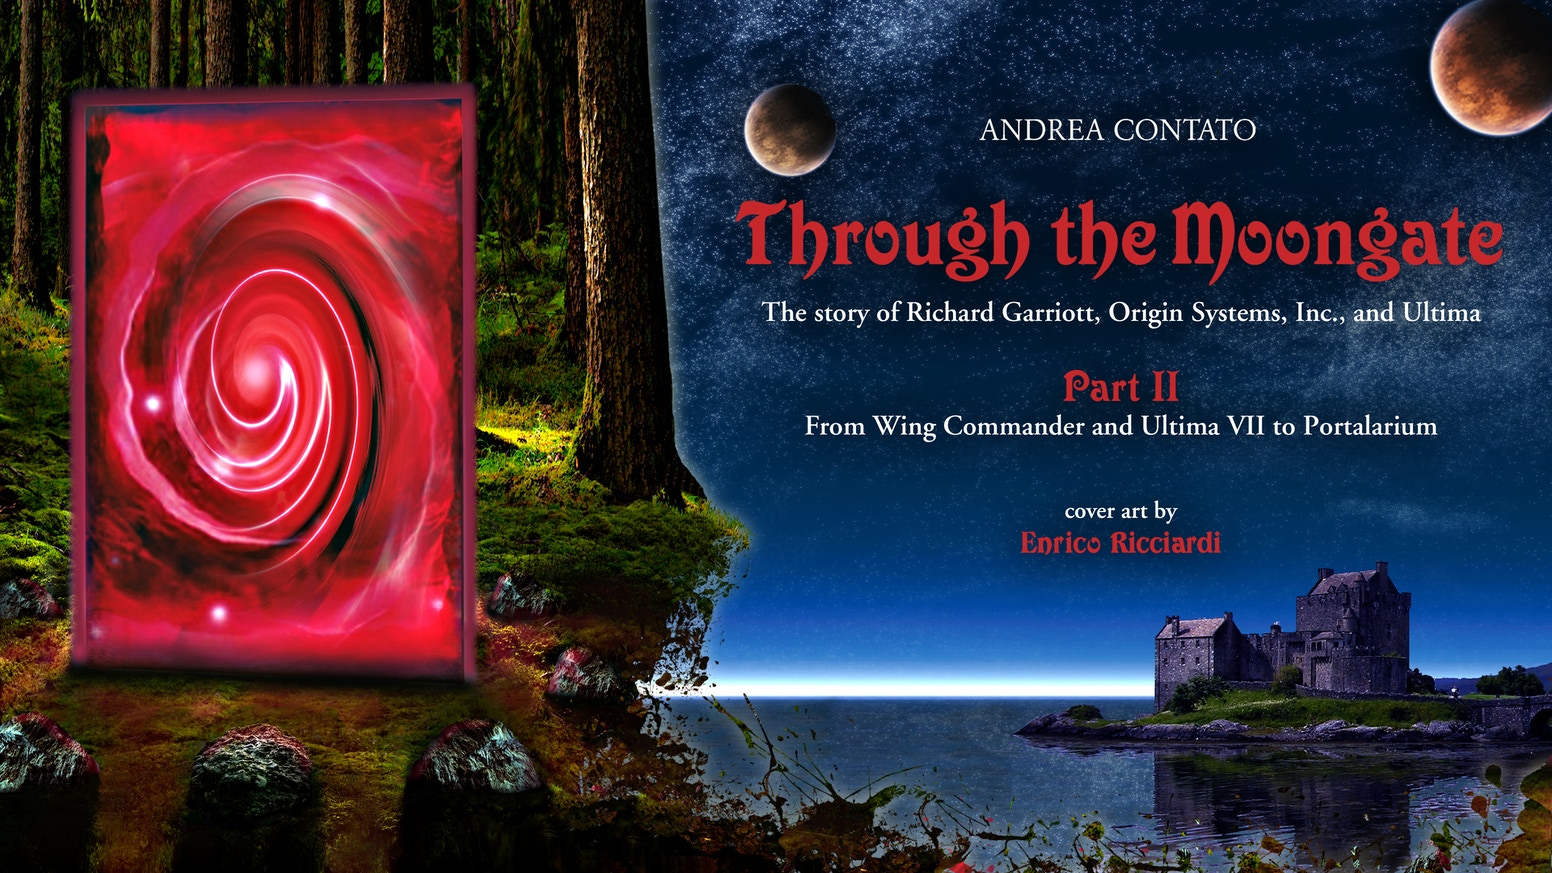 The story of Richard Garriott, Origin Systems Inc and Ultima - From Wing Commander and Ultima VII to Portalarium